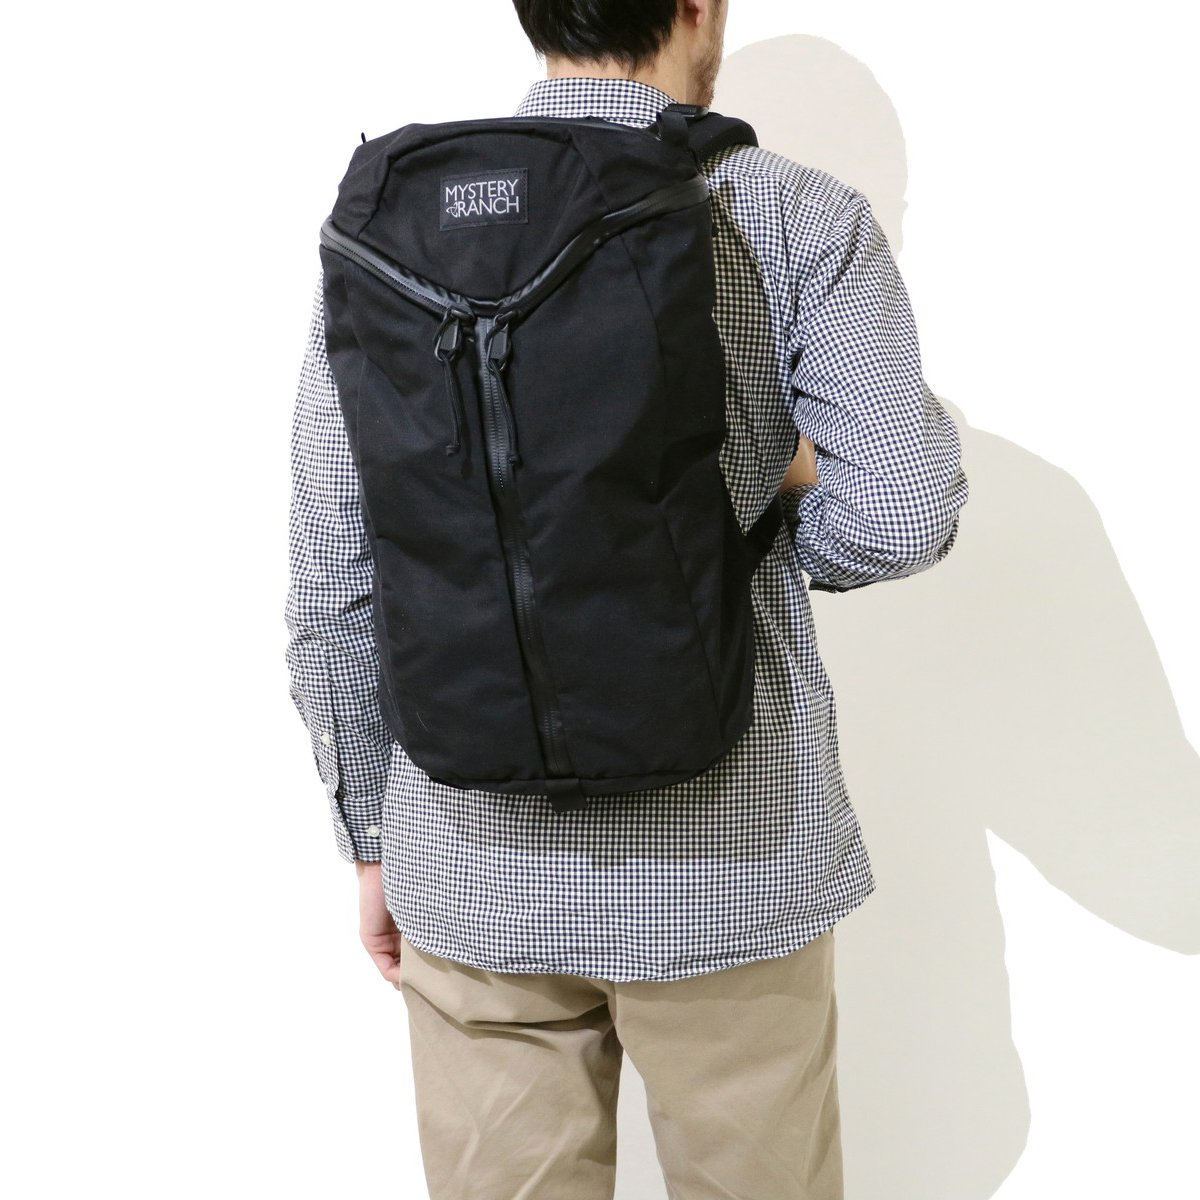 28af8170f Amazon.com | Mystery Ranch Unisex Urban Assault Black One Size | Casual  Daypacks